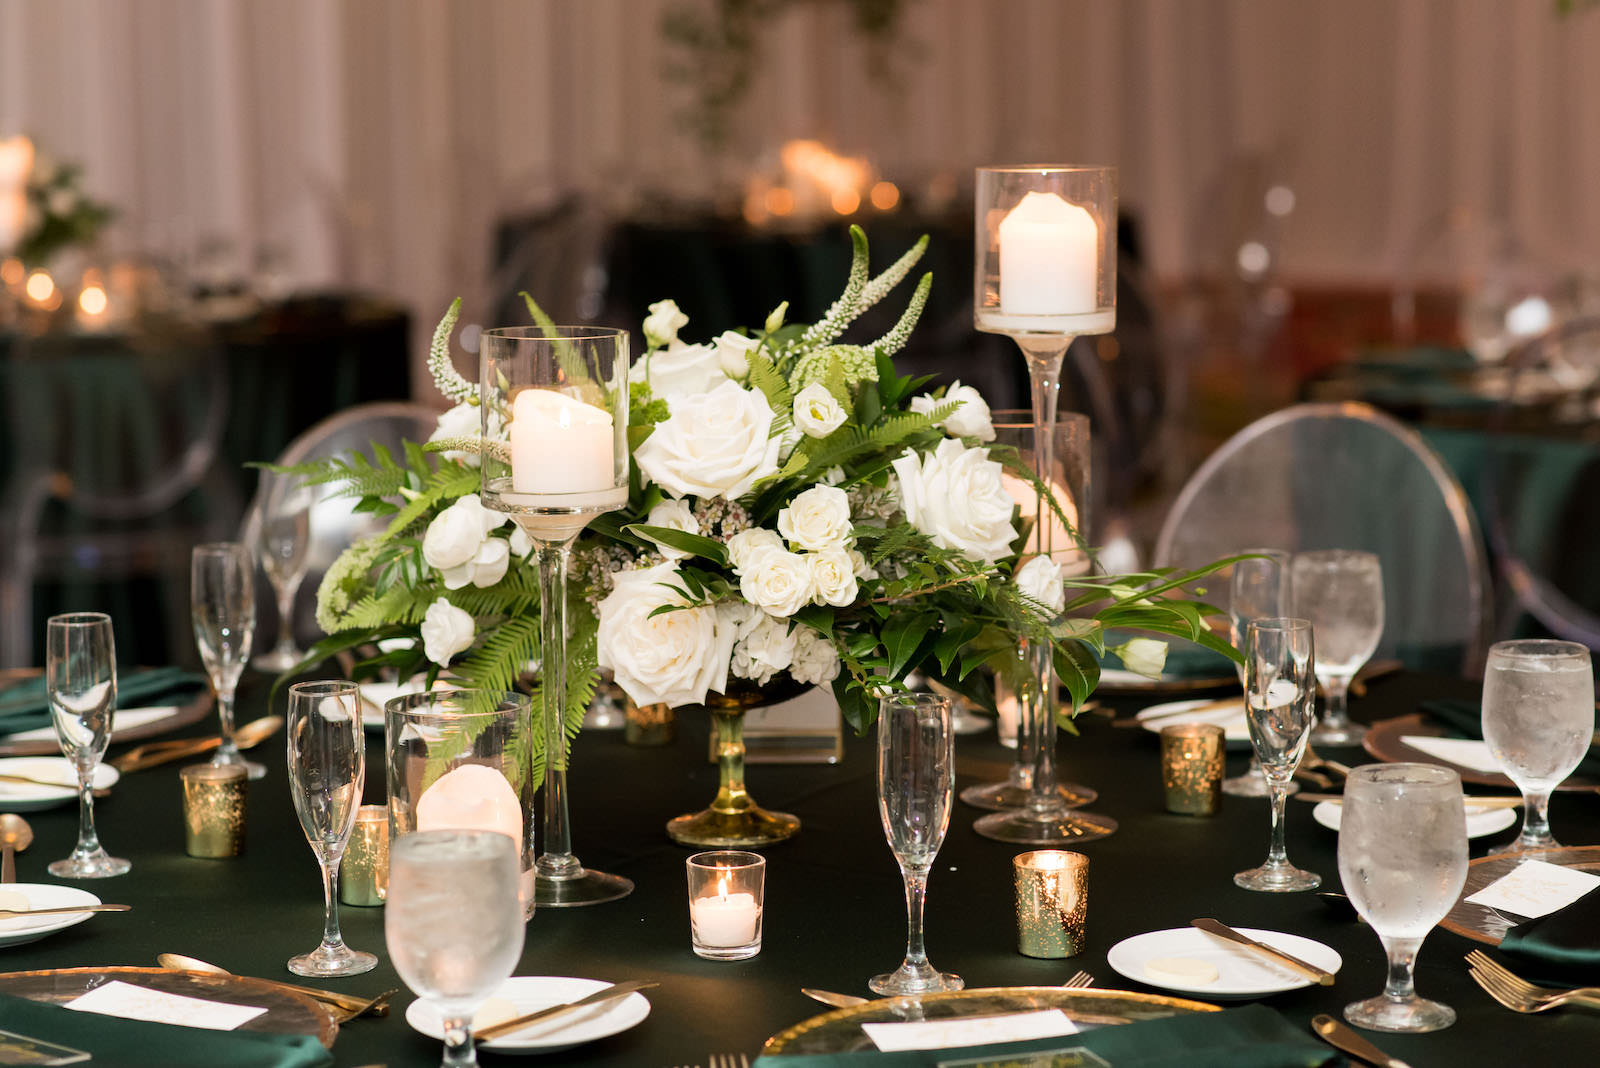 Elegant Wedding Reception Decor, Table with Emerald Green Linens, Gold Rimmed Chargers and Flatware Candles, Low White Roses and Greenery Floral Arrangements, Acrylic Chiavari Chairs | Tampa Bay Wedding Planner Parties A'la Carte | Wedding Chairs, Chargers, Chairs and Flatware Rentals A Chair Affair | Wedding Florist Bruce Wayne Florals